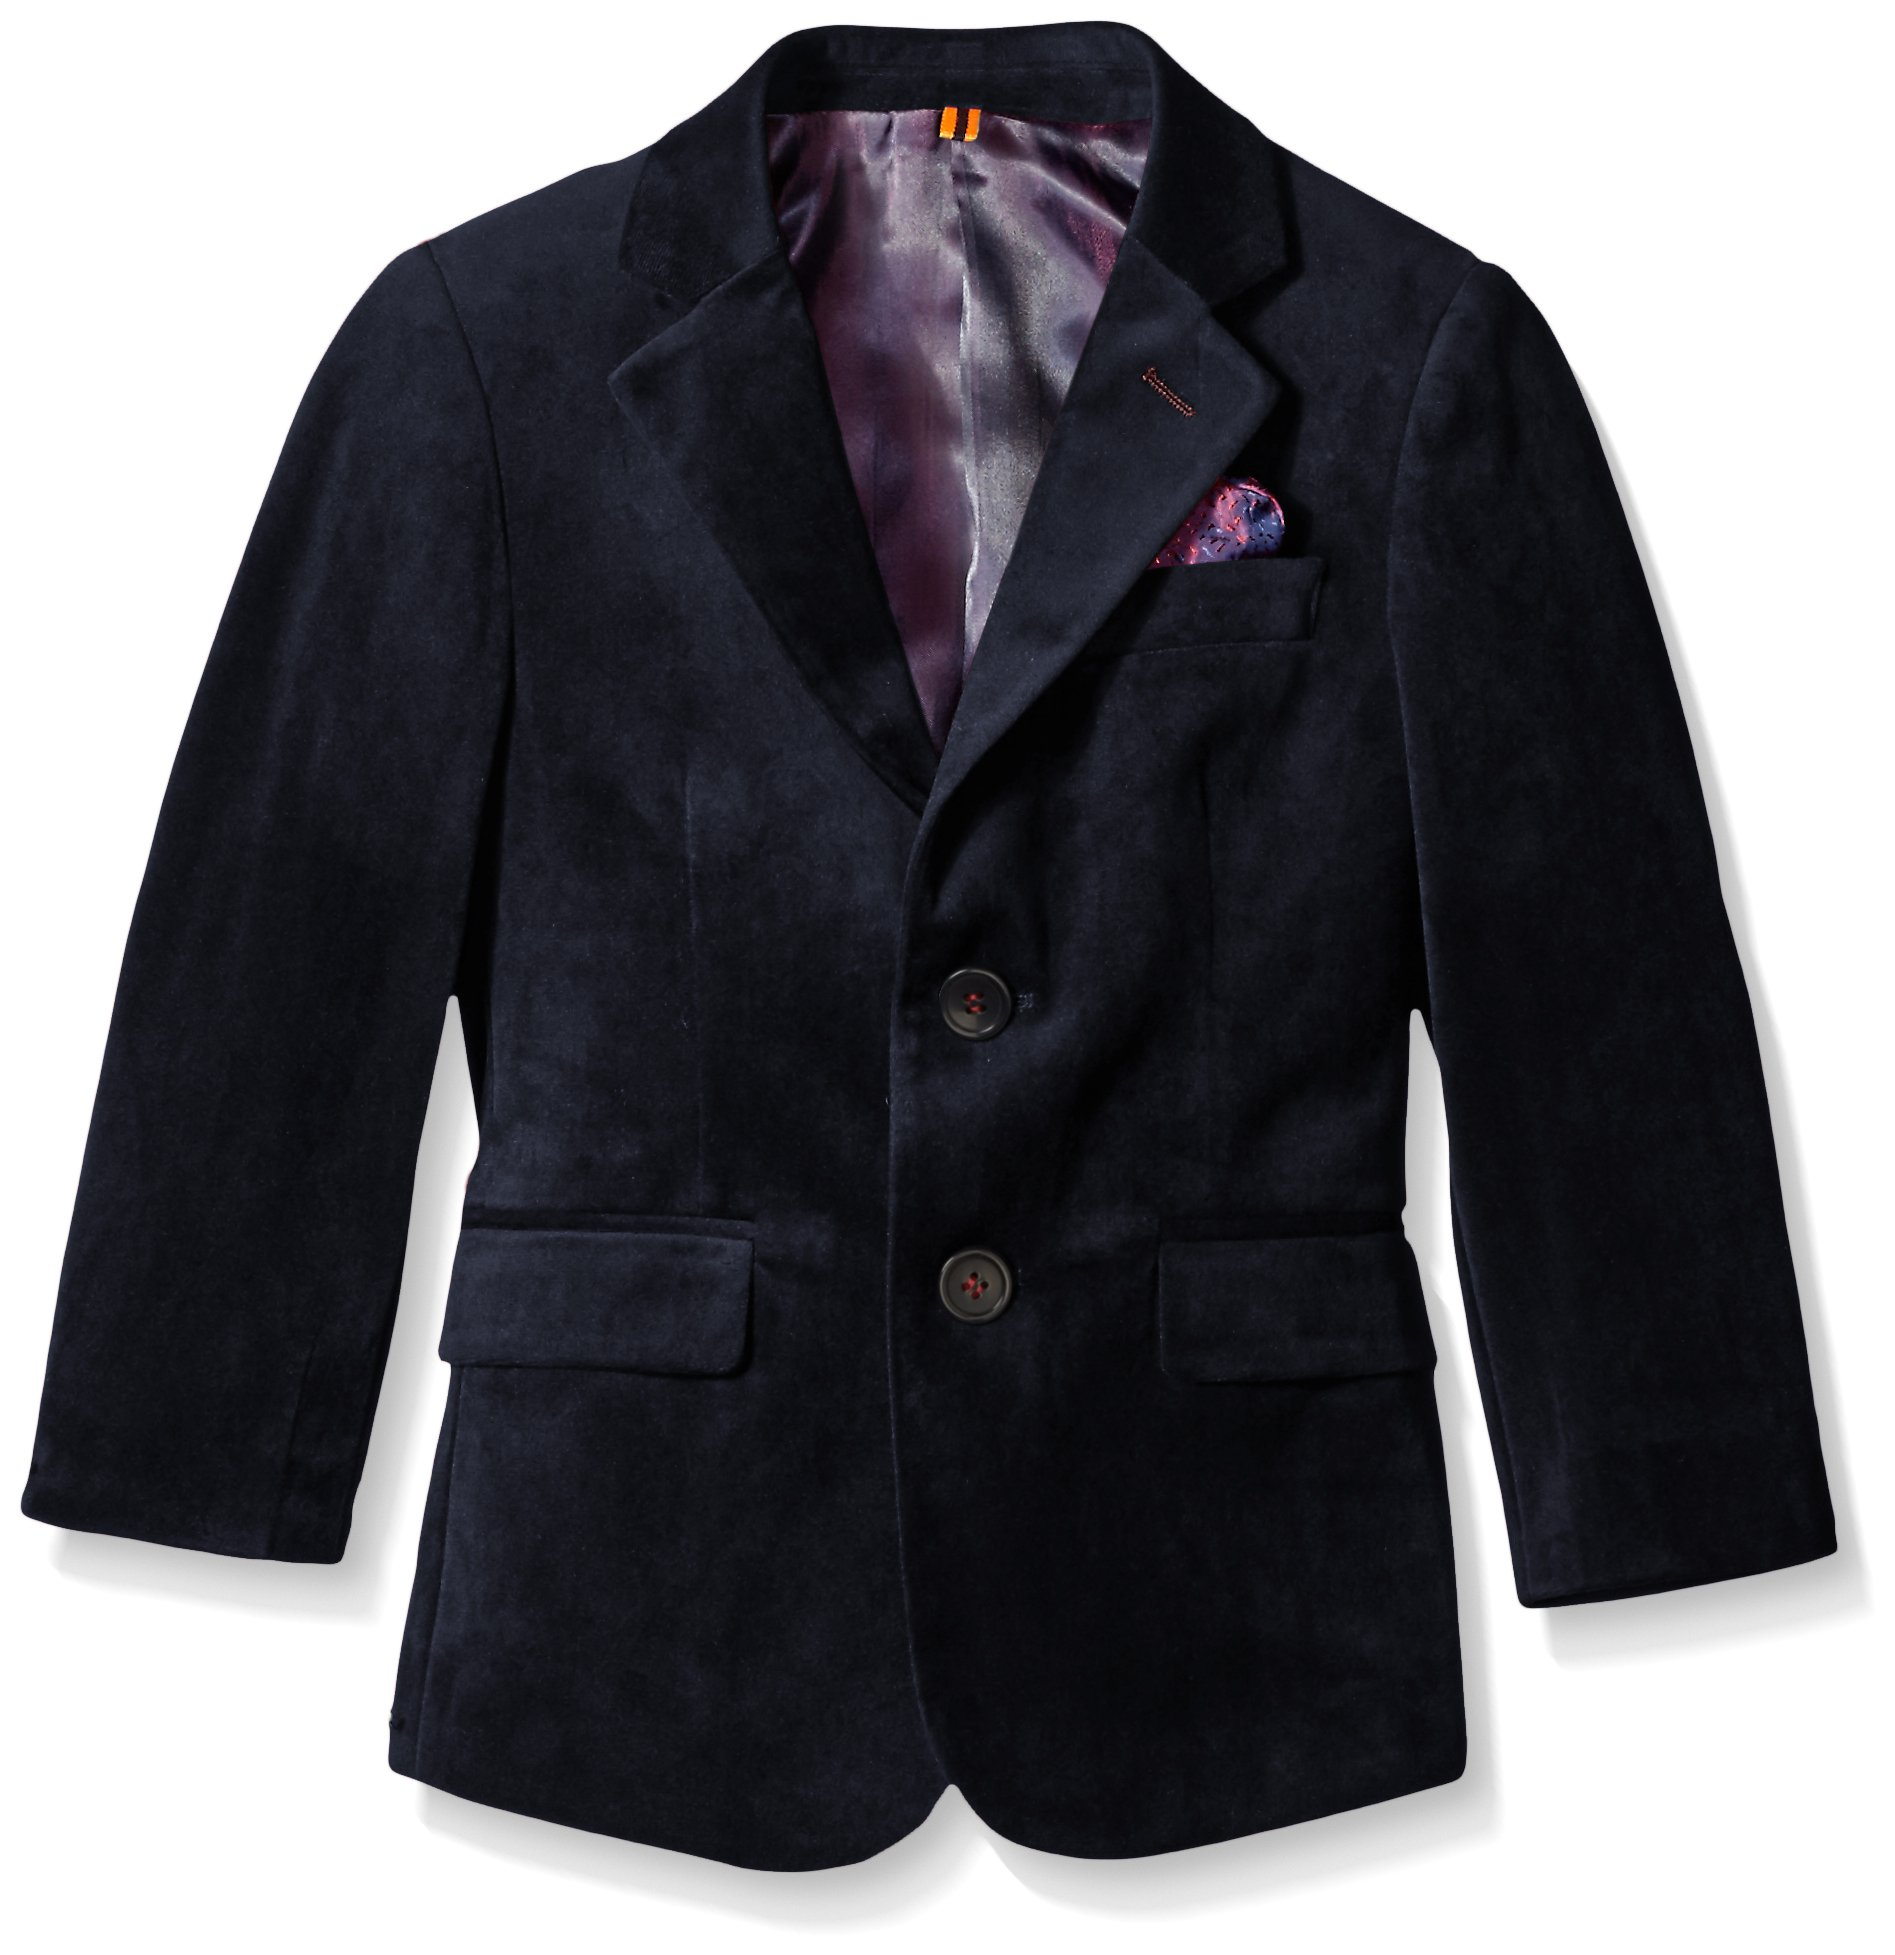 Isaac Mizrahi Boys' Big Boys' Single-Breasted Velvet Blazer, True Navy, 18 by Isaac Mizrahi